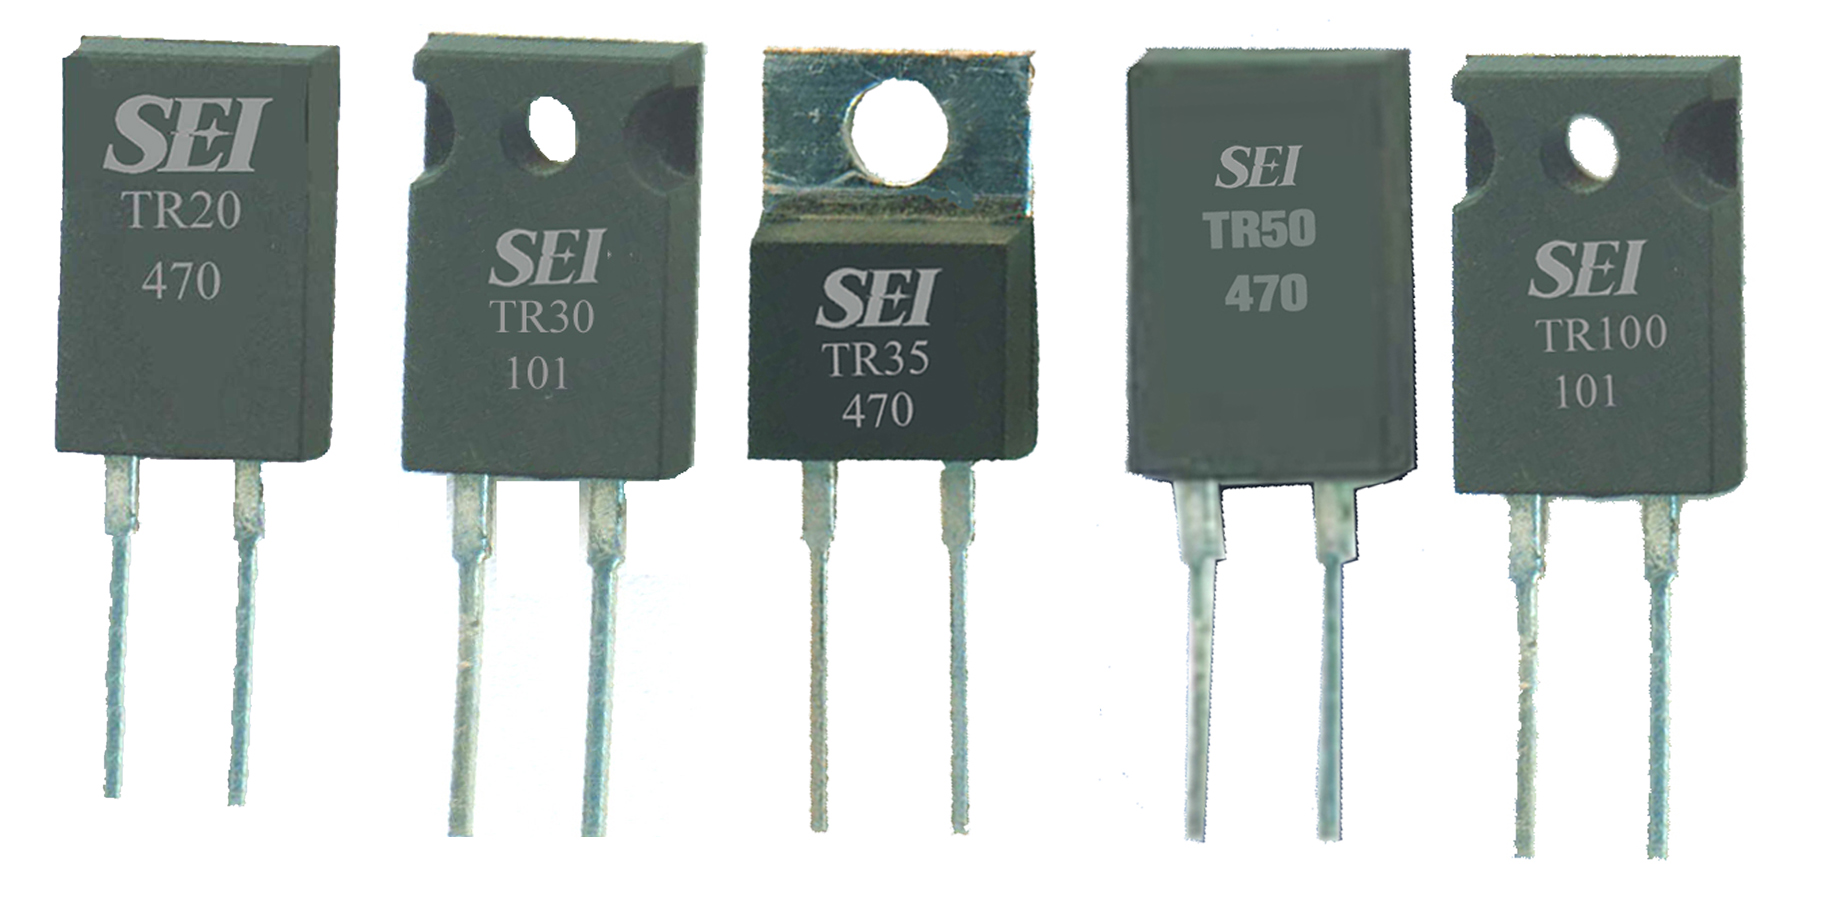 Power Resistors Offer up to 100W